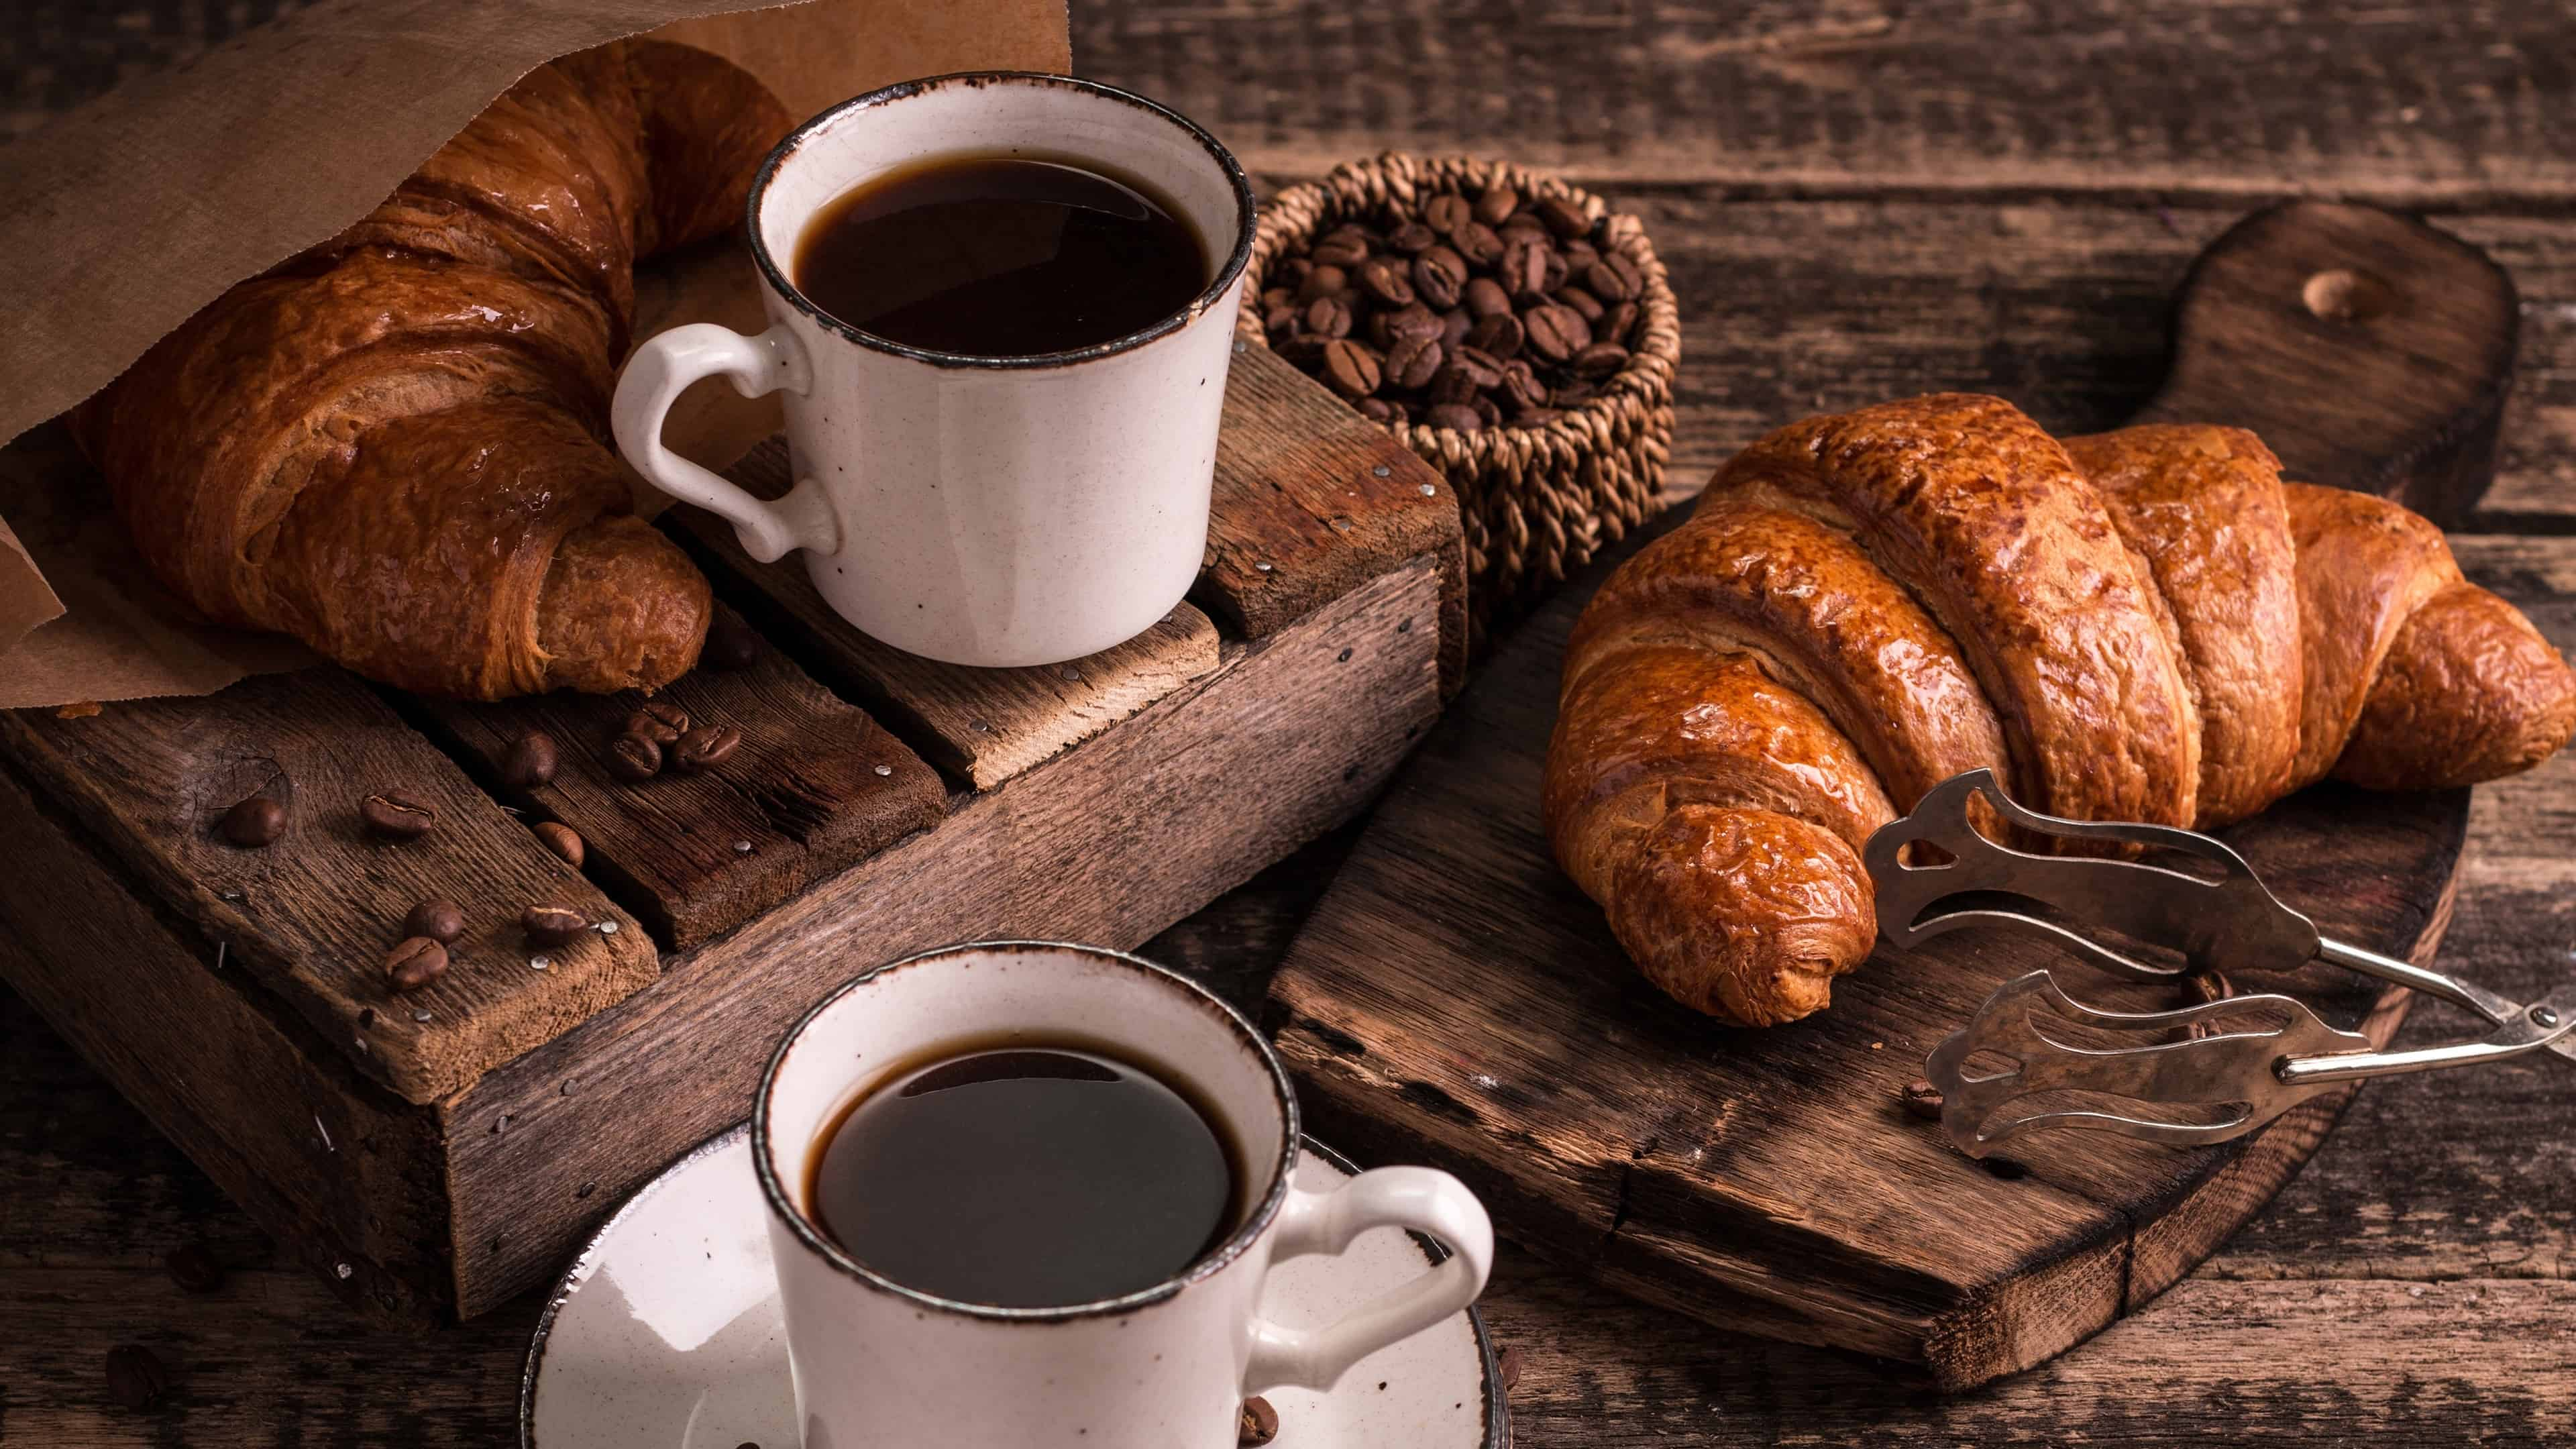 croissant and coffee uhd 4k wallpaper